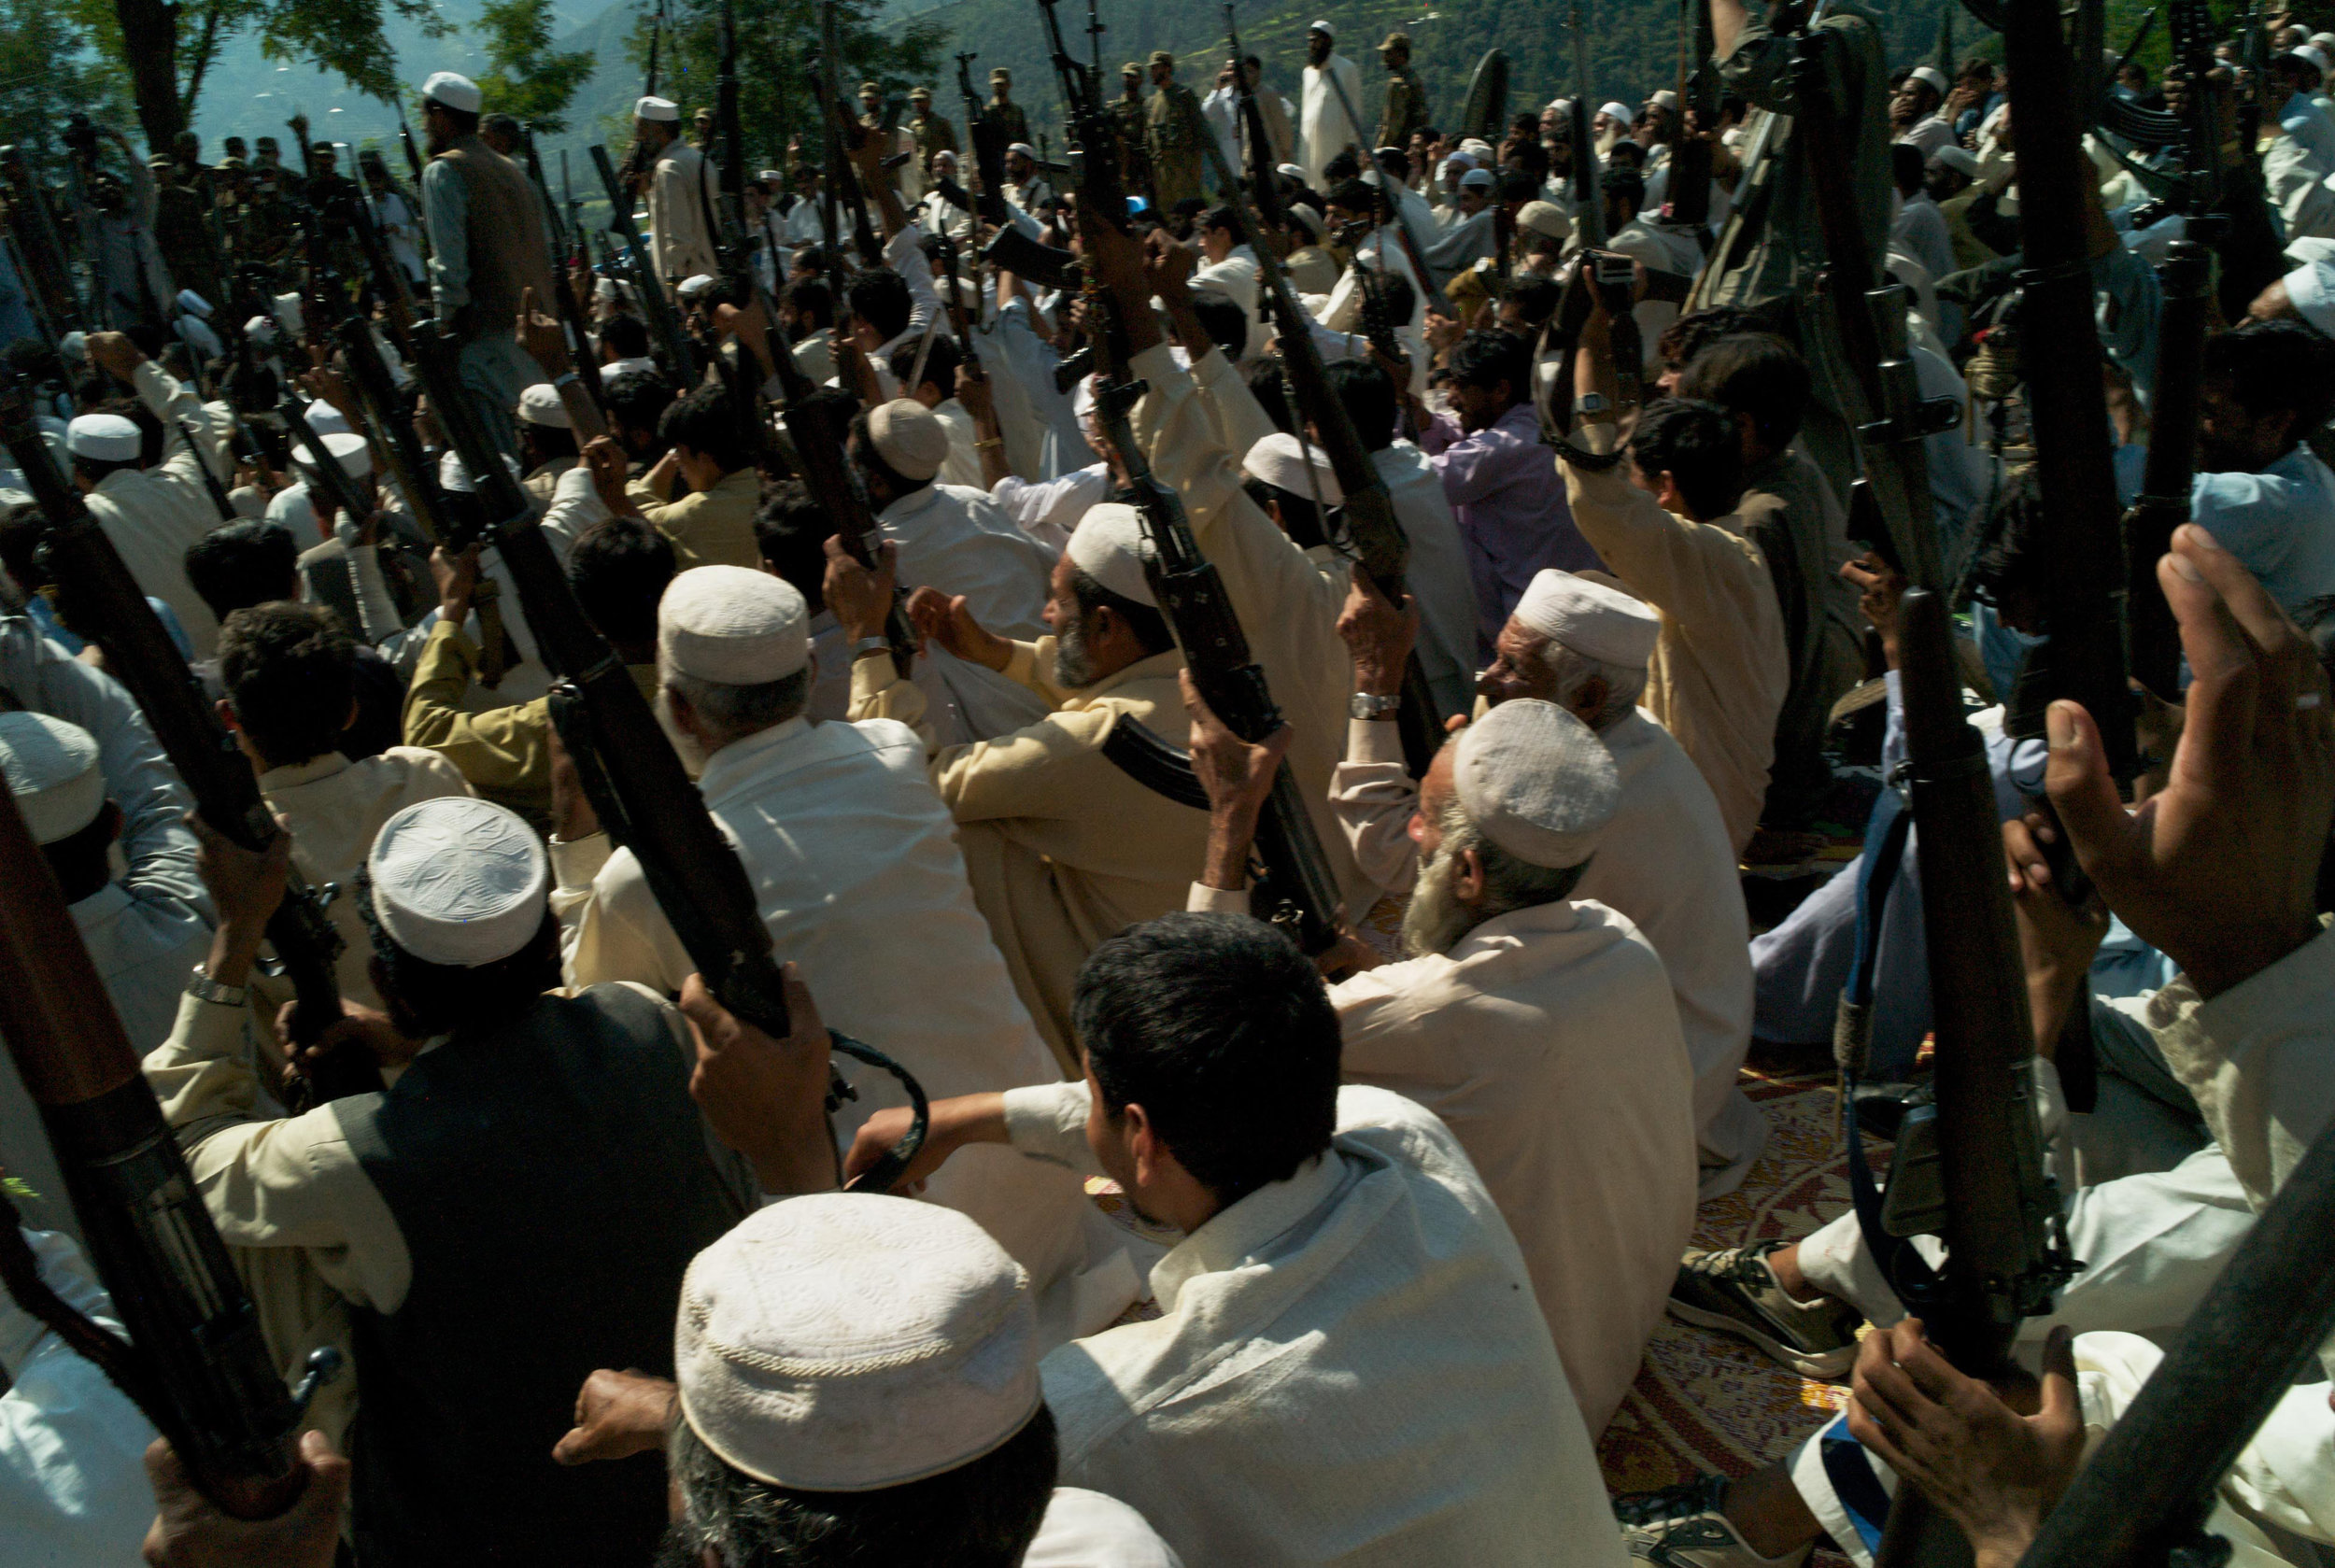 PIOCHAR, PAKISTAN- SEPTEMBER 2009  Raising their rifles in a show of strength, men from the village defence committees of the Piochar Valley gather together as a lashkar (traditional army) is raised to rid this remote corner of Swat from the Taliban. Men in all twelve union councils of Swat have been encouraged to take up arms and fight in conjunction with Pakistani security forces as fighters from Maulana Faizullah's Tehrik-i-Taliban continue to terrorise this mountainous region.